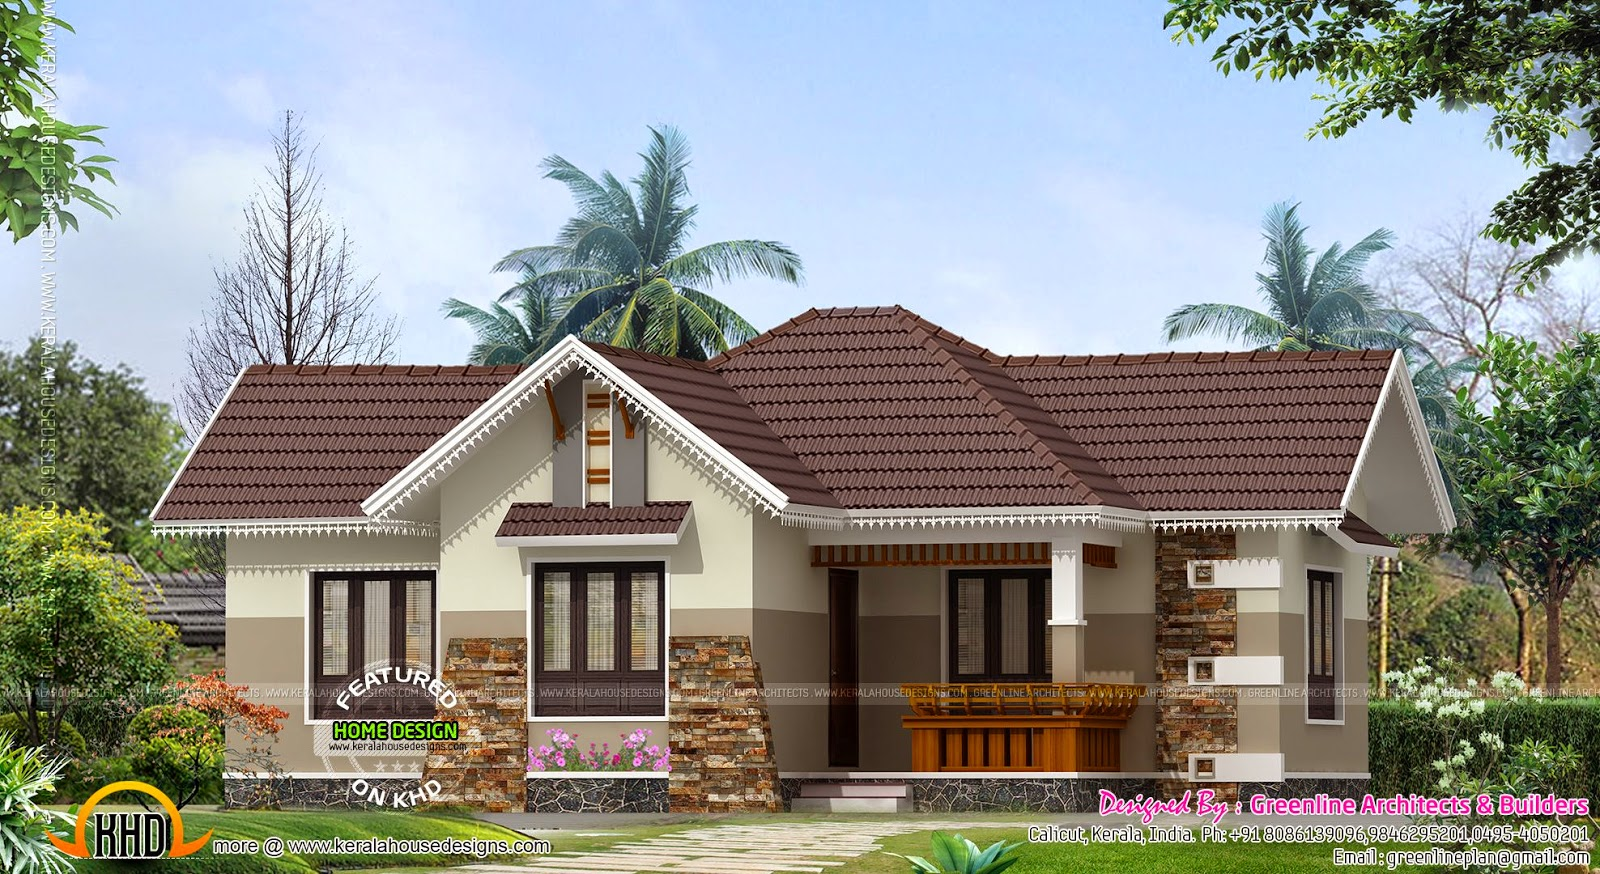 2014 kerala home design and floor plans for Home exterior design ideas photos